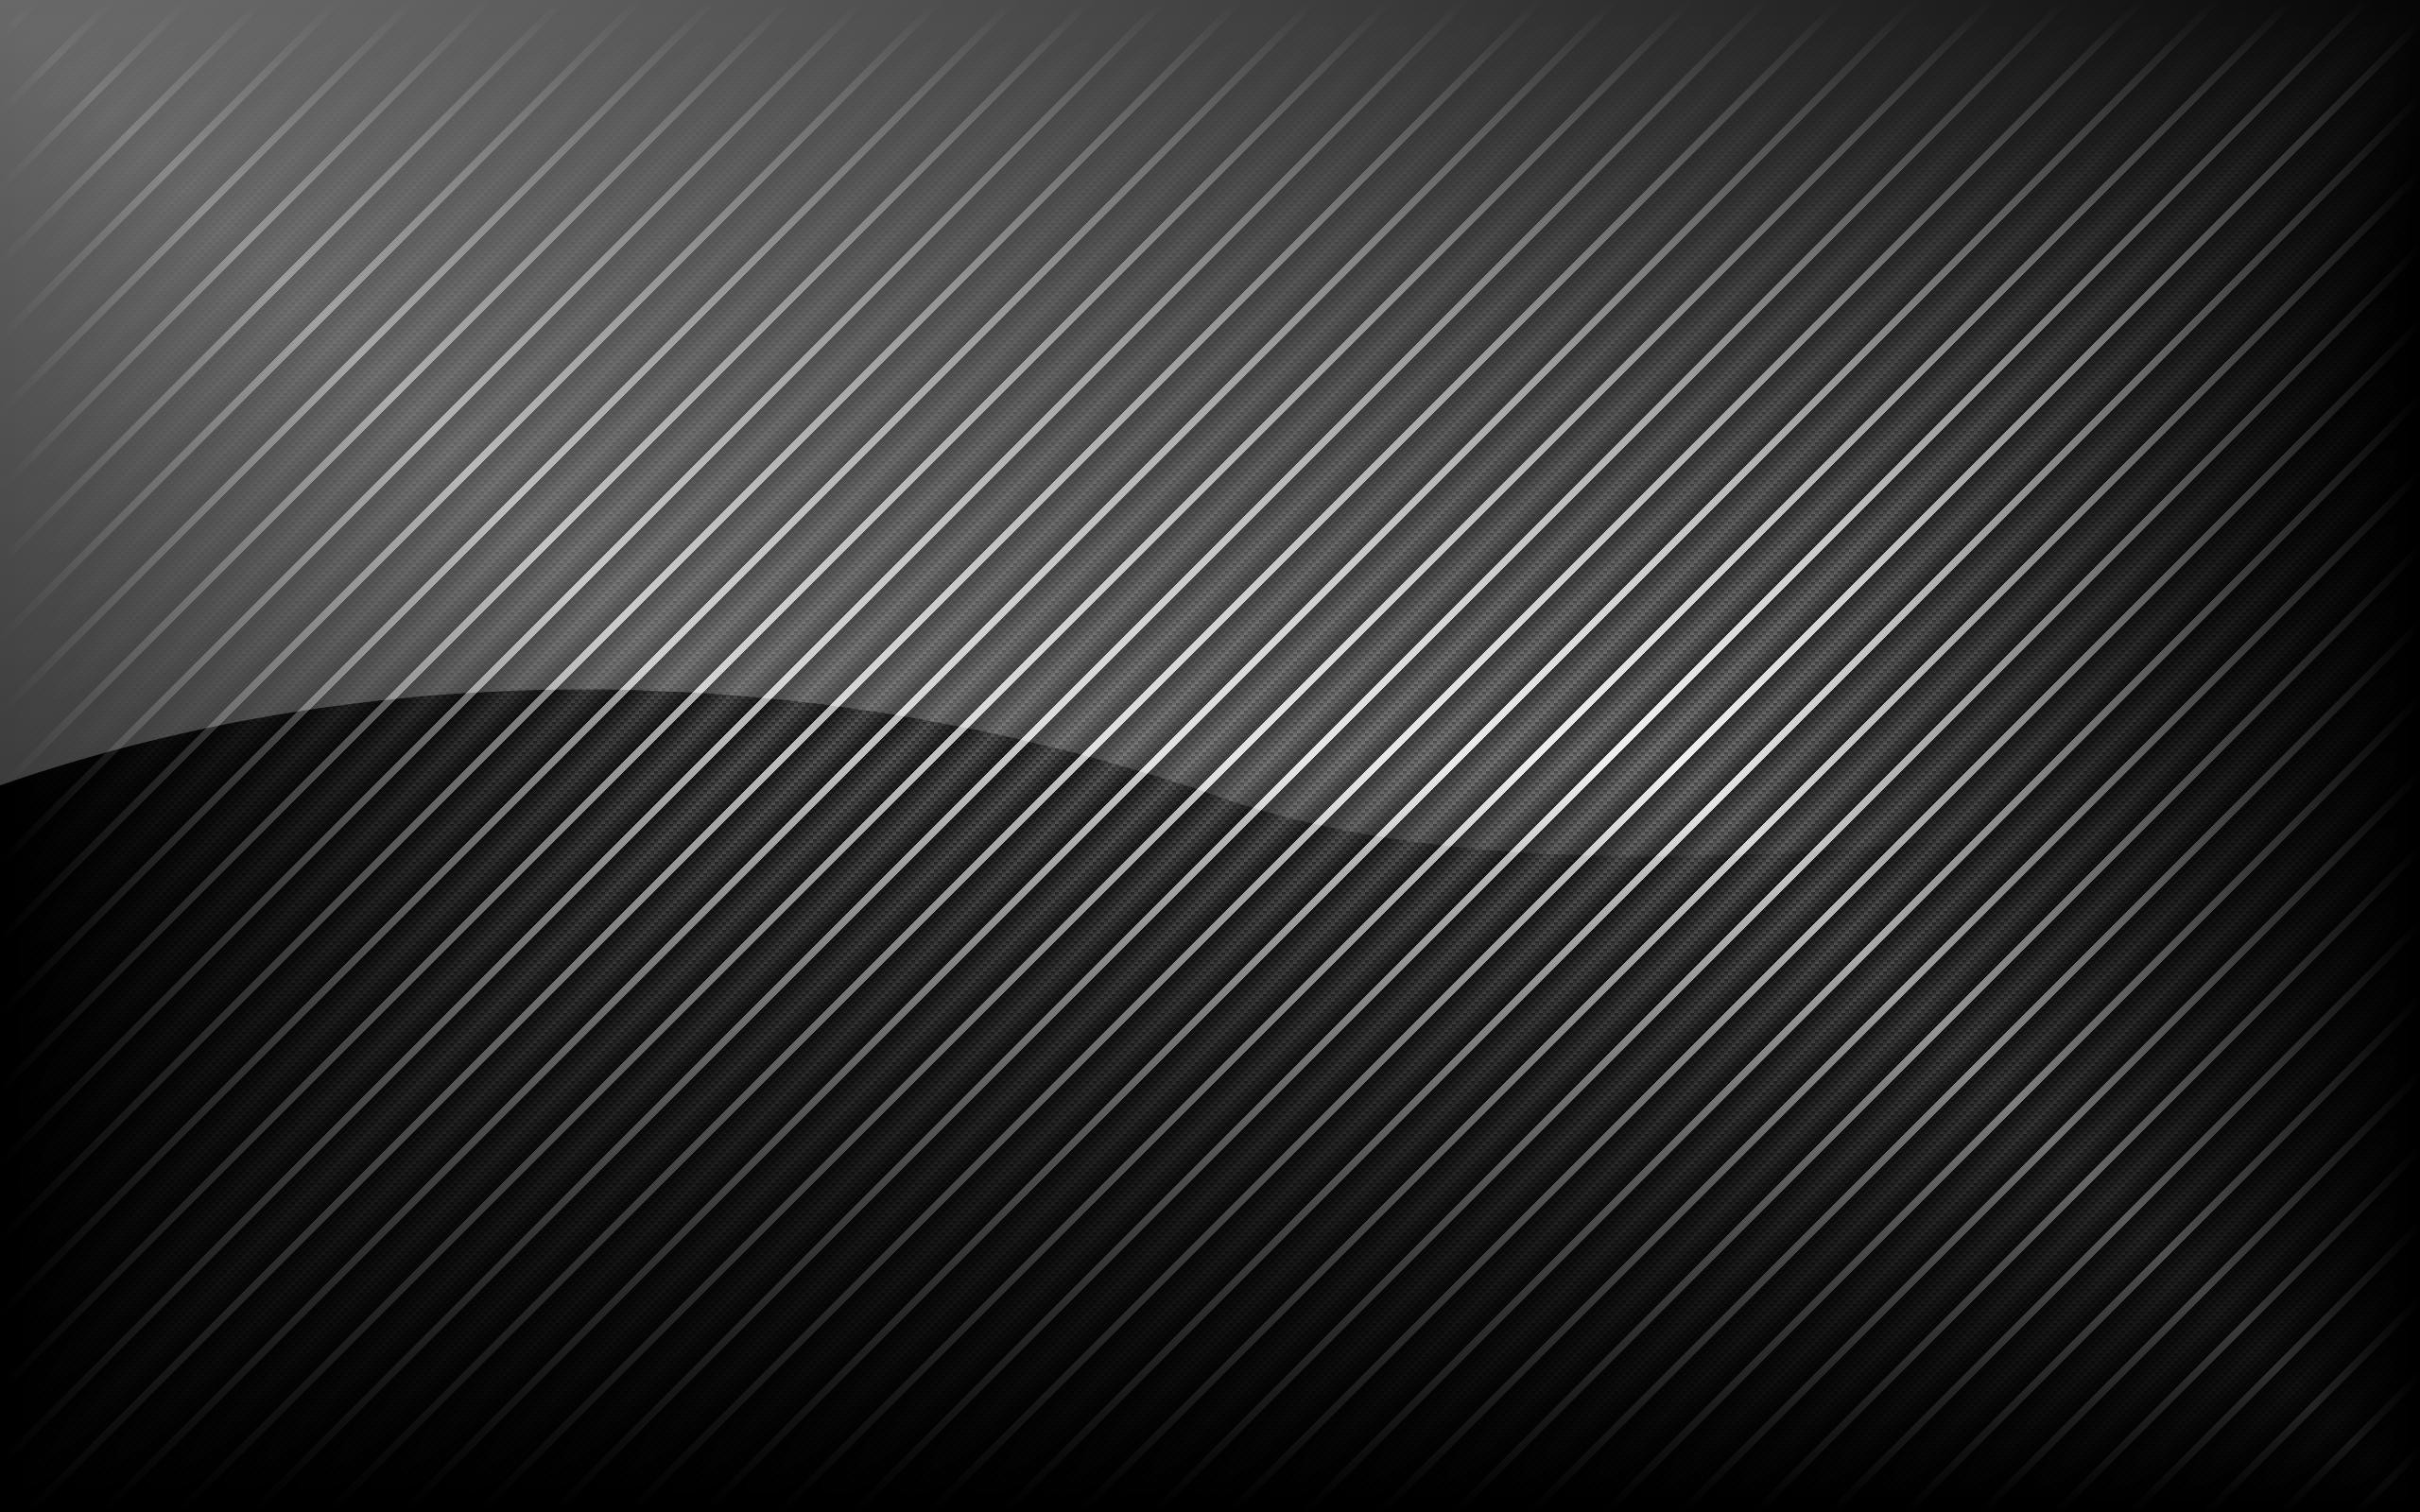 Iphone Wallpaper: IPhone 6 Carbon Fiber Wallpaper (76+ Images